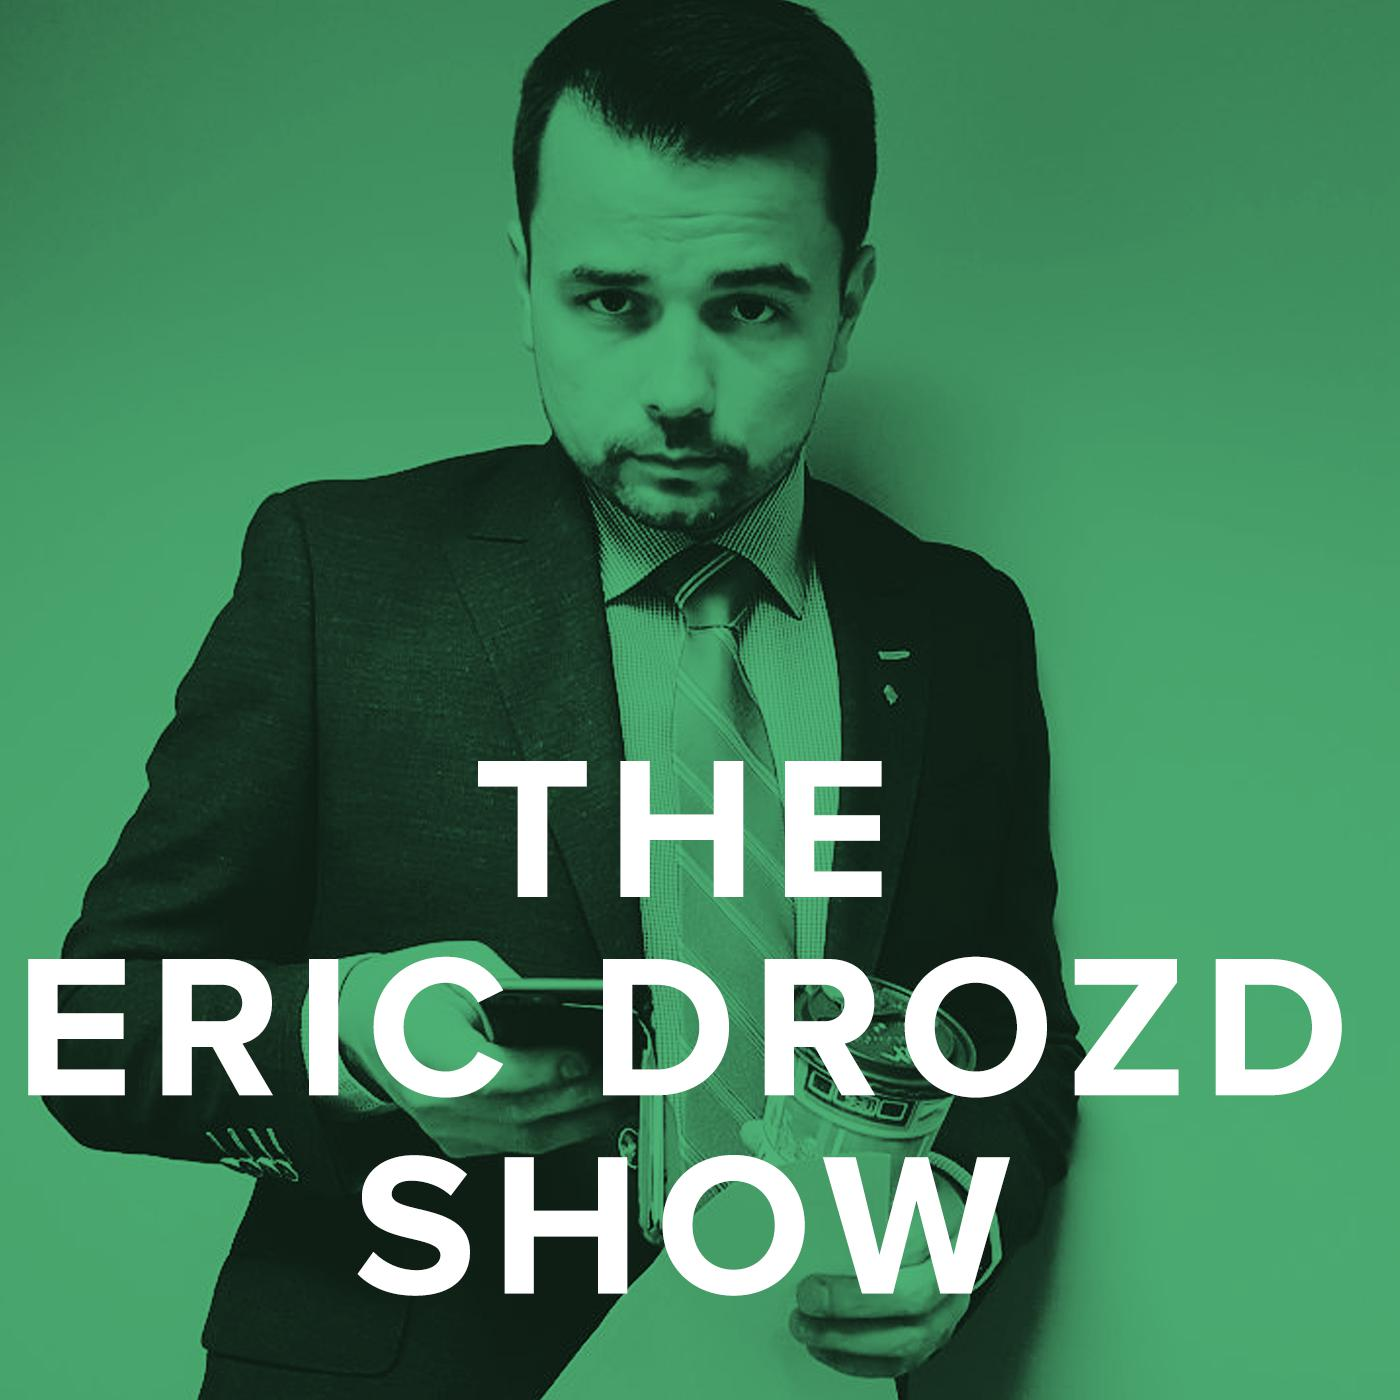 The Eric Drozd Show (podcast) - Eric Drozd | Listen Notes